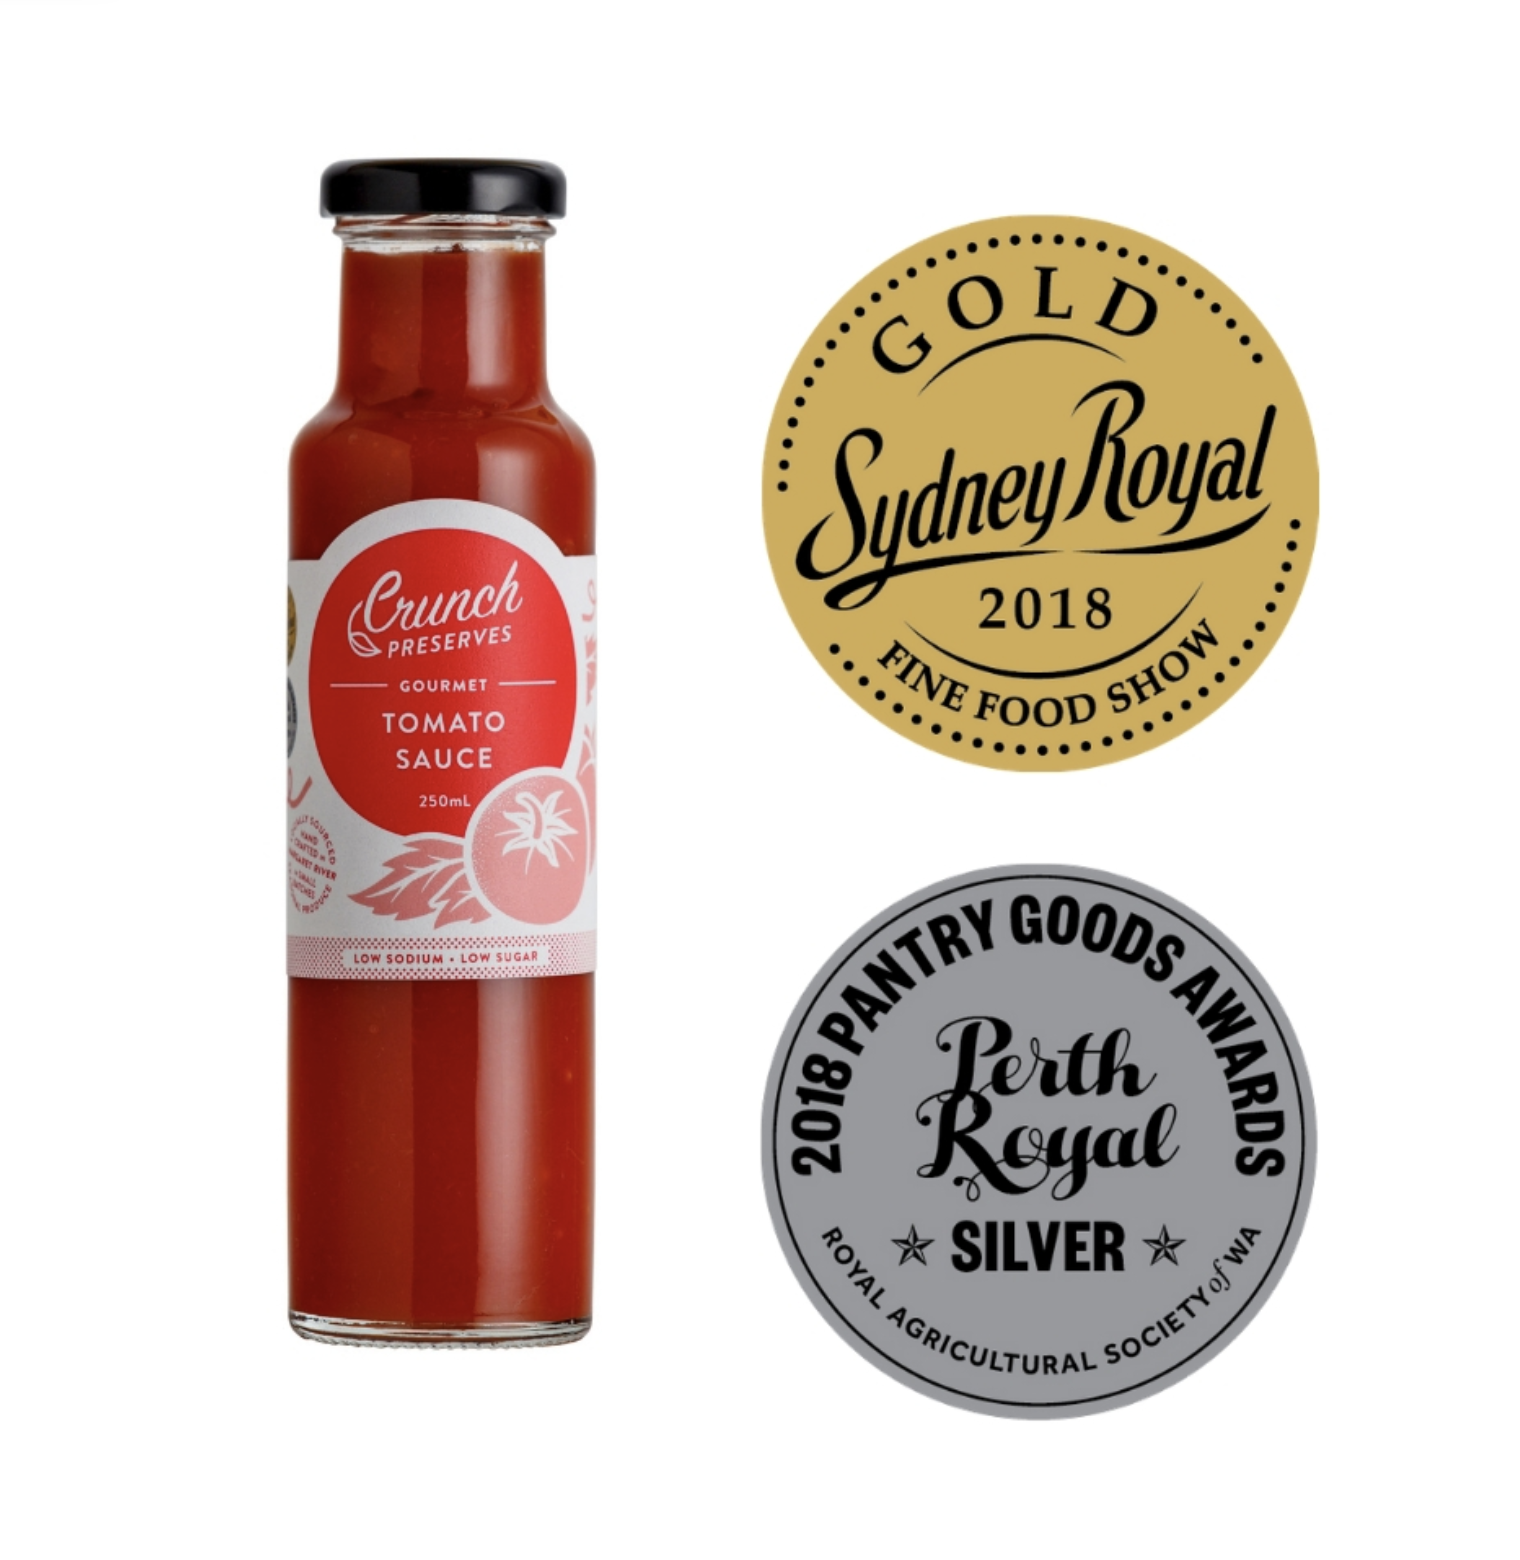 Crunch Preserves Our gourmet low sugar, low sodium tomato sauce received gold at the Sydney Fine Food Show and Silver at the Perth Royal Show.